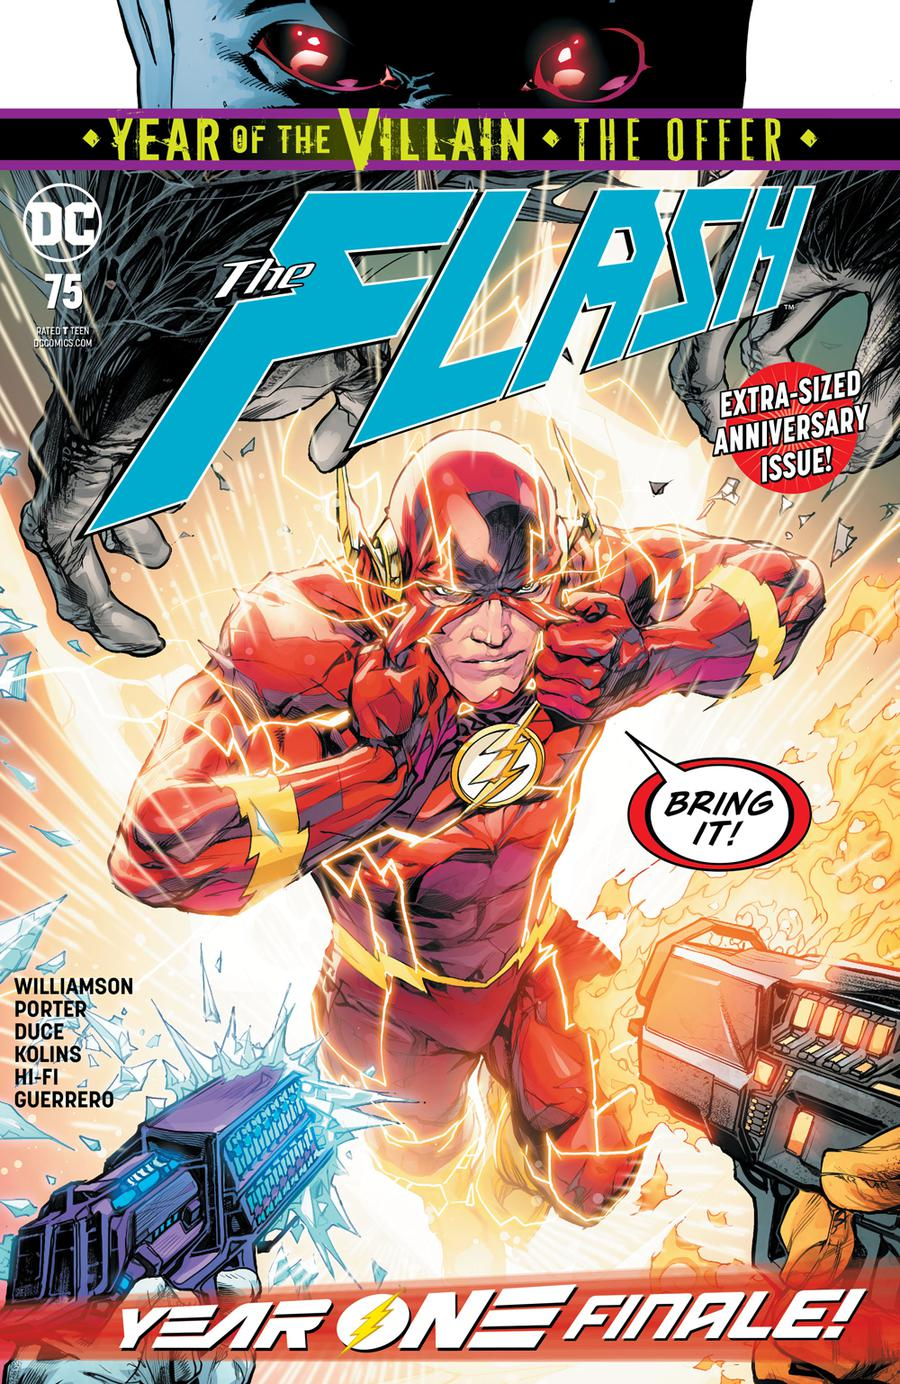 Flash Vol 5 #75 Cover A Regular Howard Porter Cover (Year Of The Villain The Offer Tie-In)